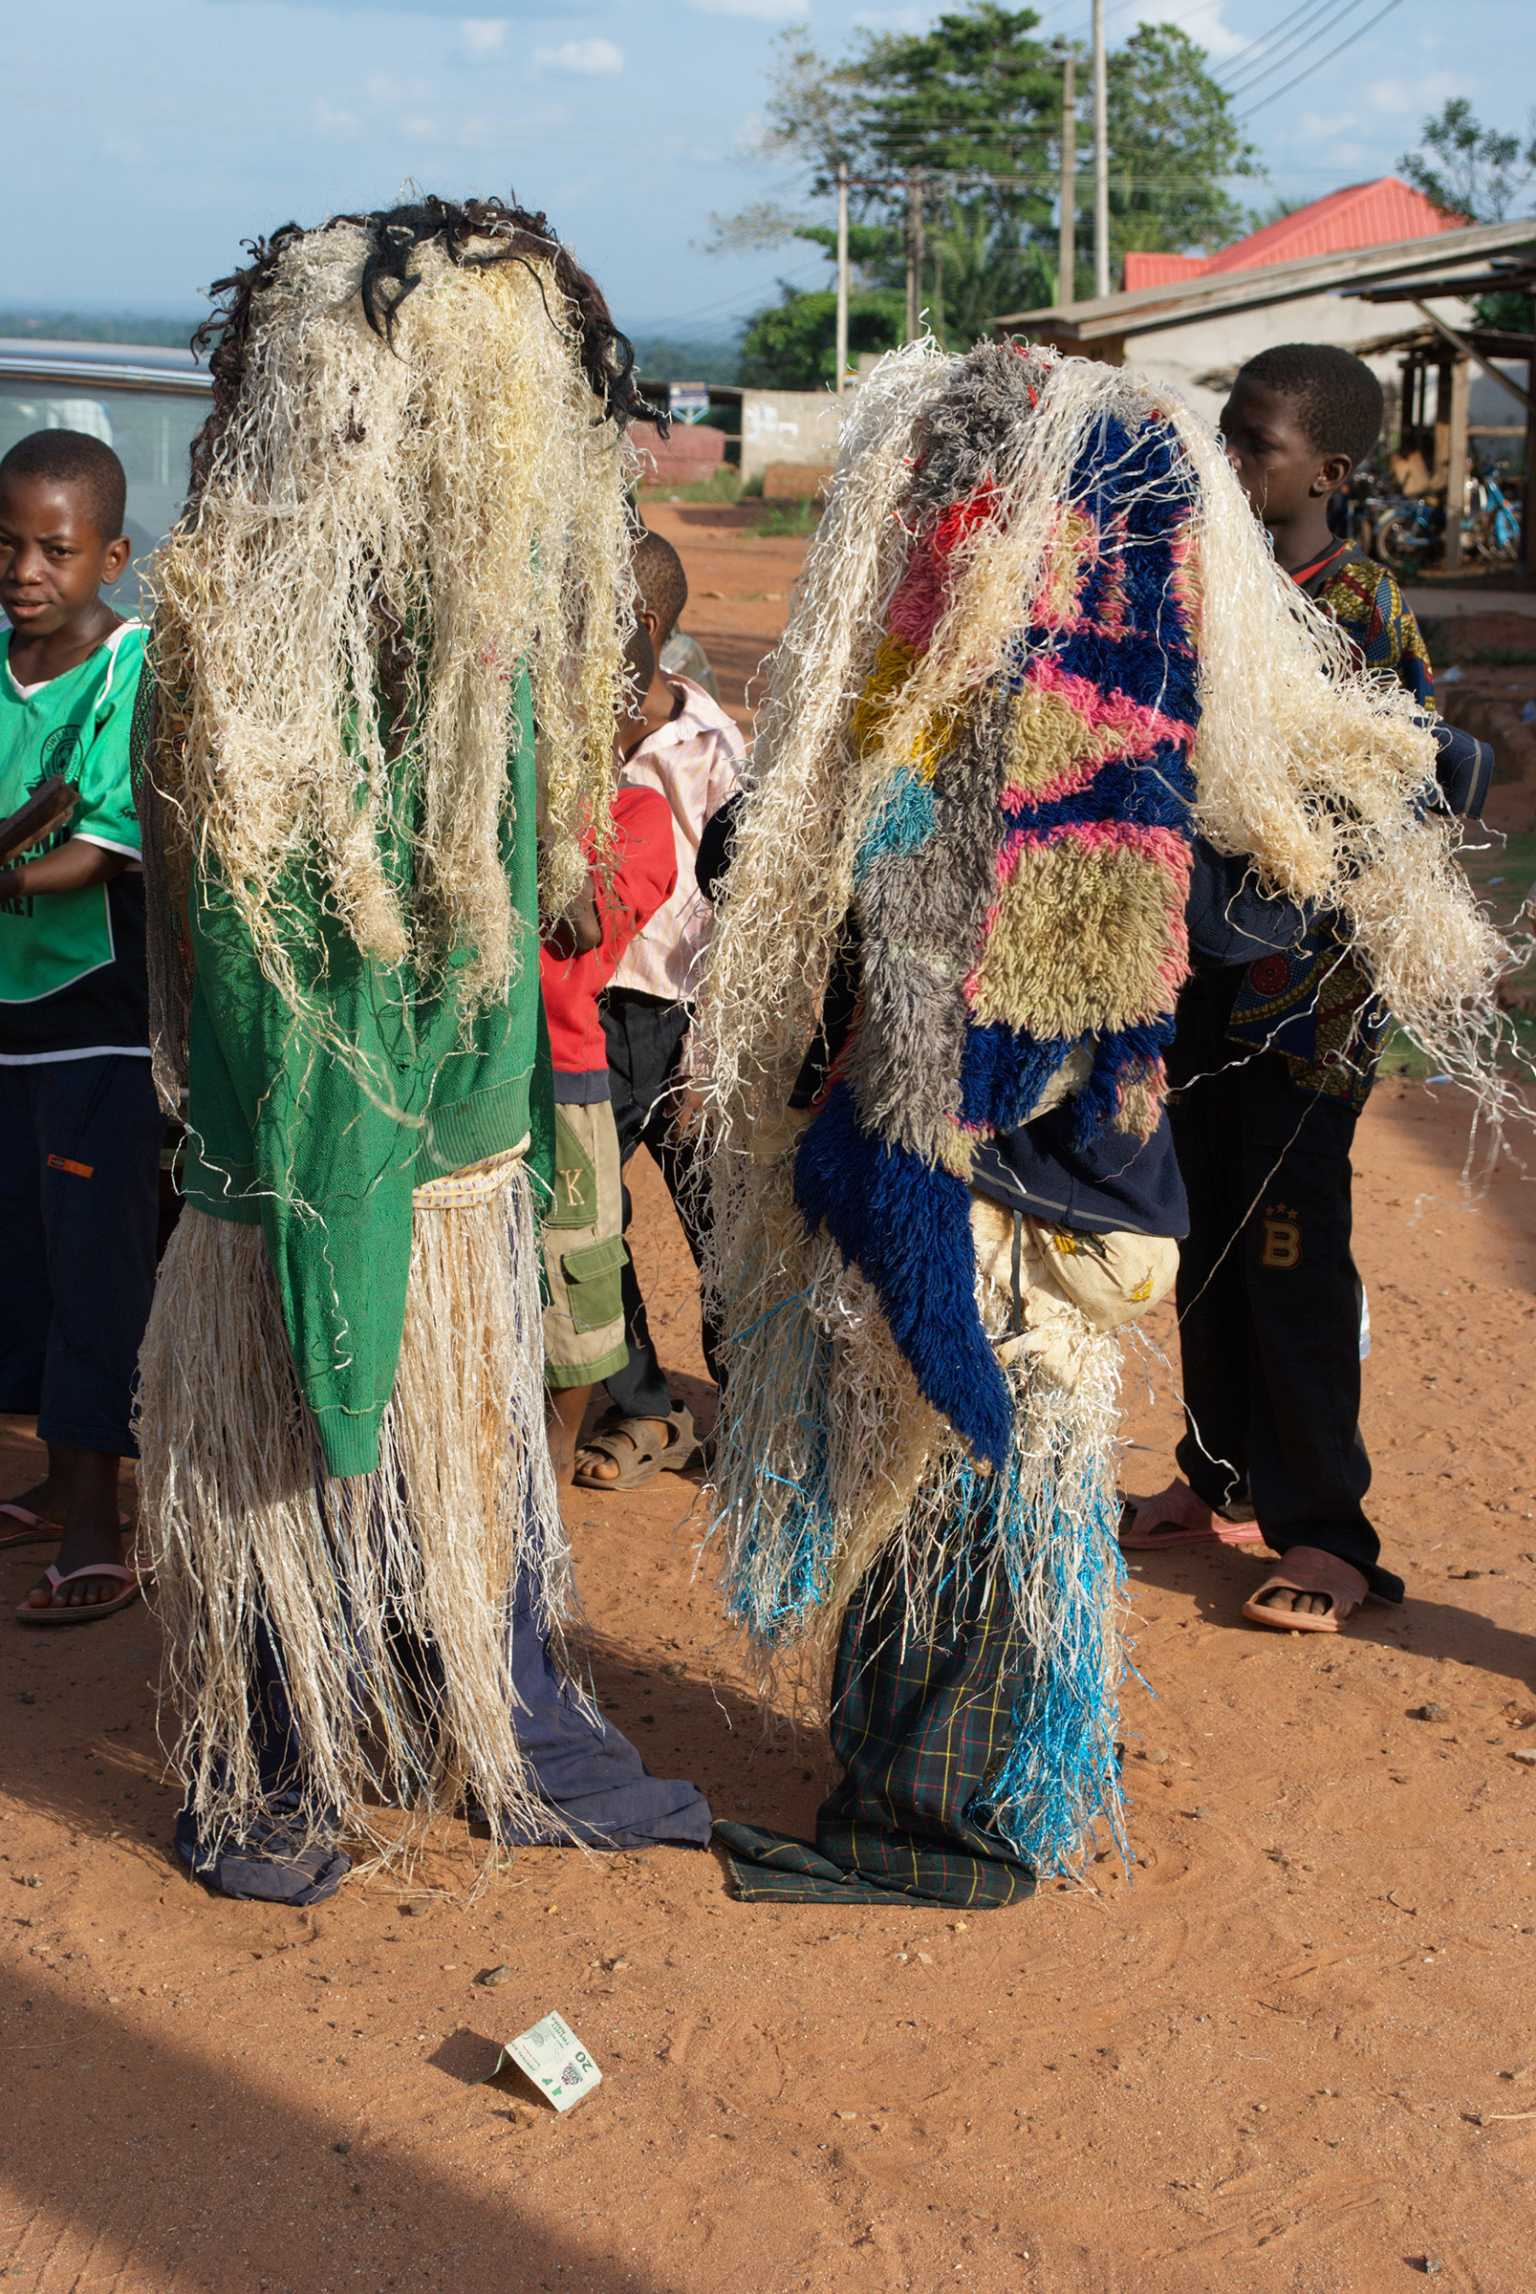 Children Masquerade during Easter celebrations